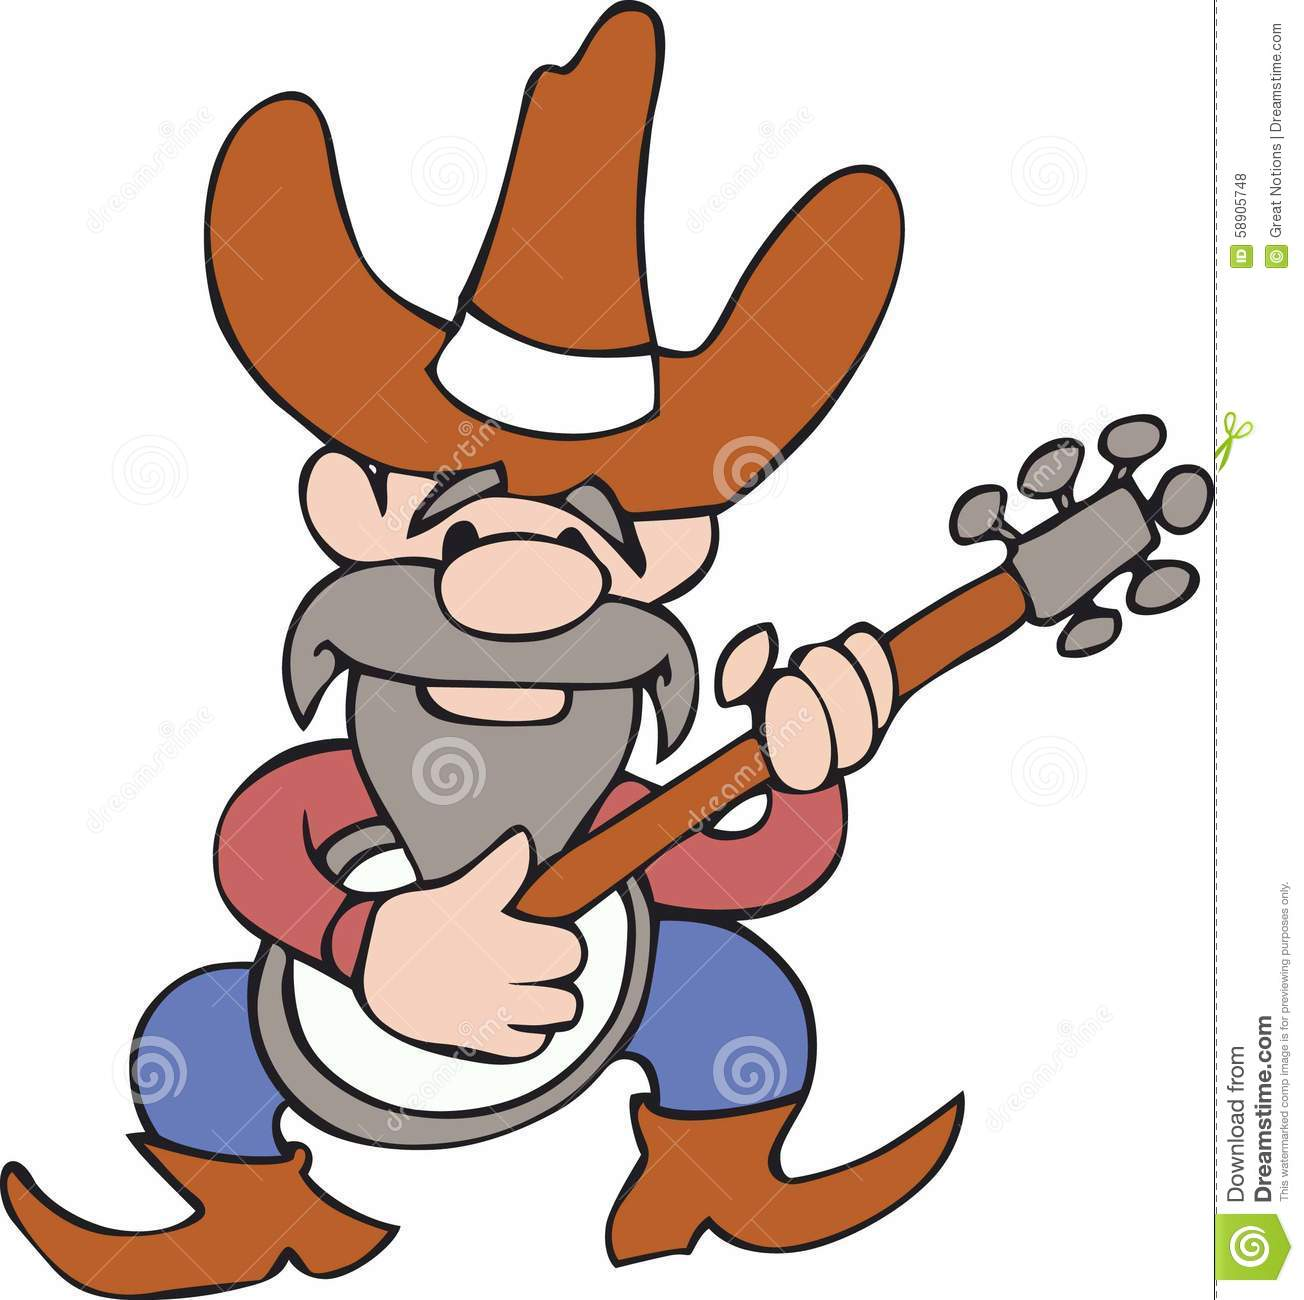 Royalty Free Stock Photos: HILLBILLY BANJO PLAYER. Image: 58905748